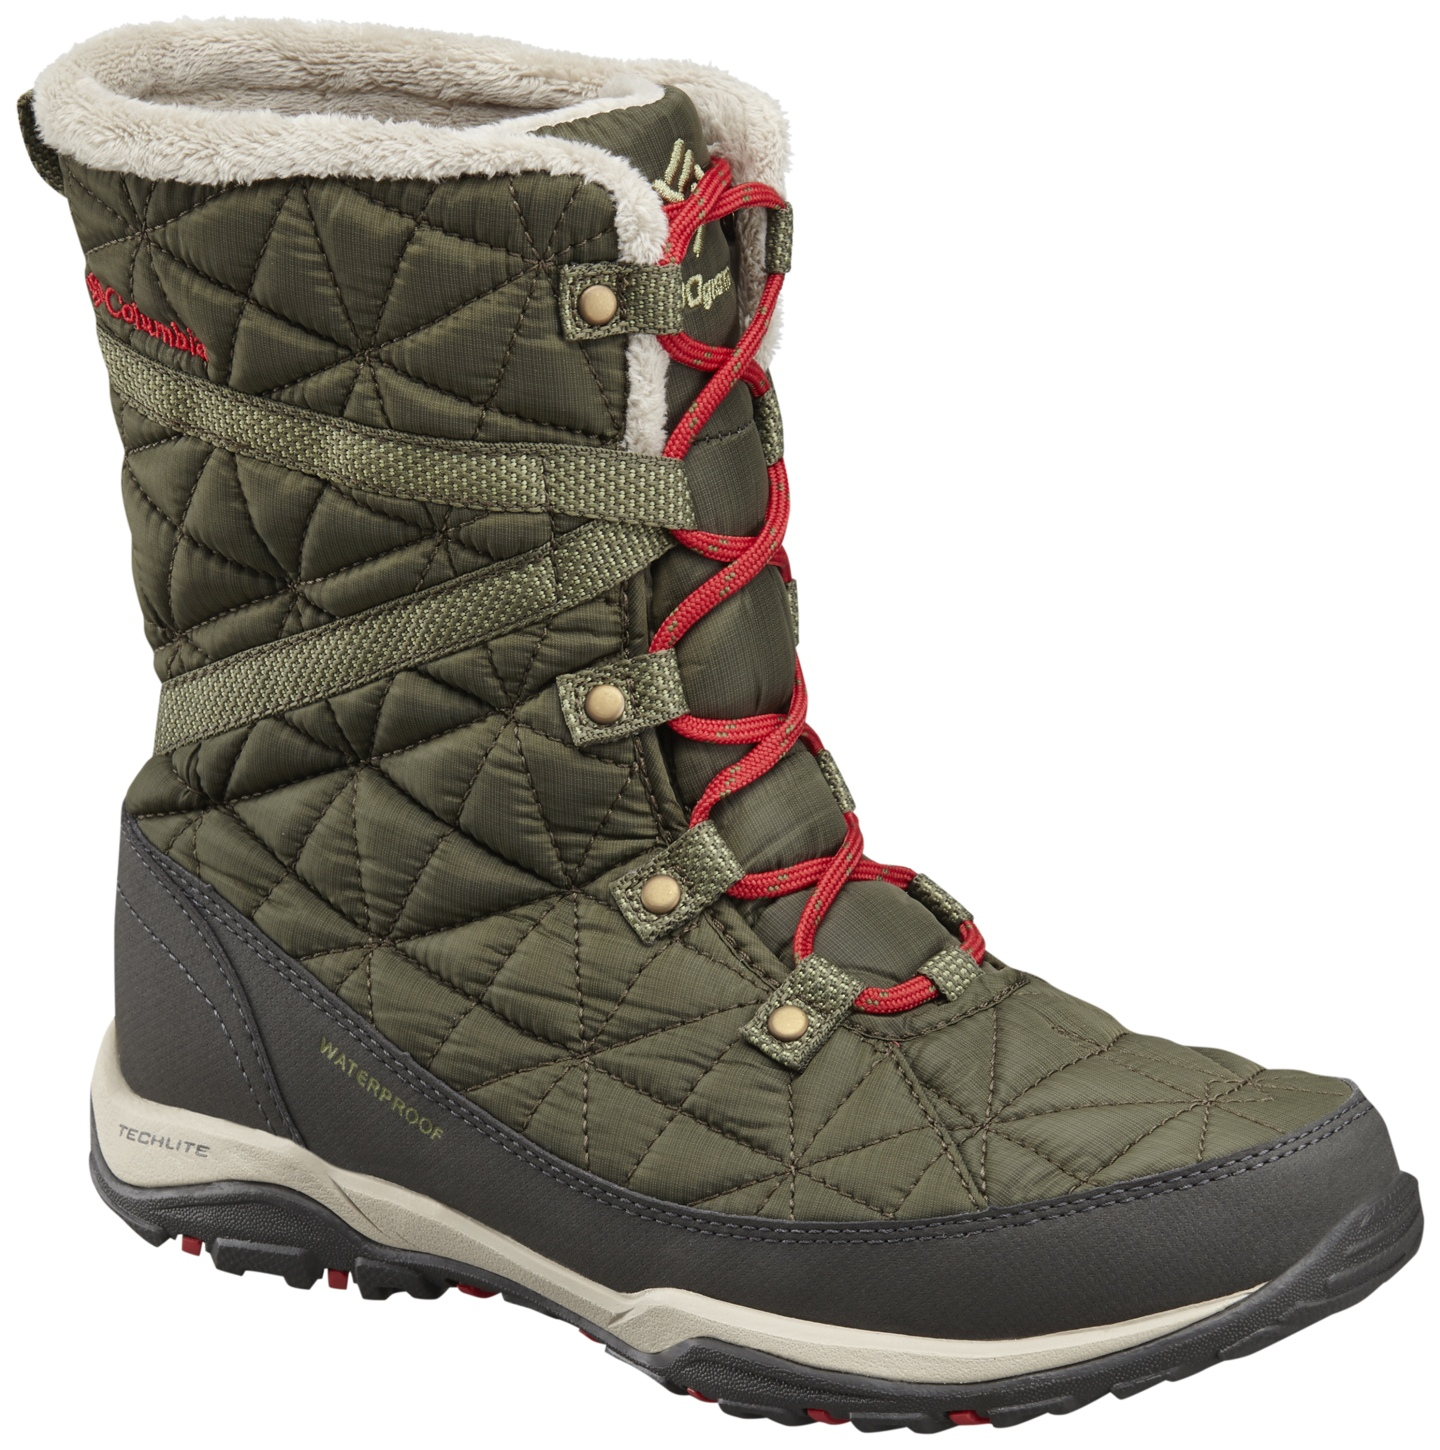 Columbia Women's Loveland Mid Omni-heat Waterproof Winter Boots Nori, Burnt Henna-30